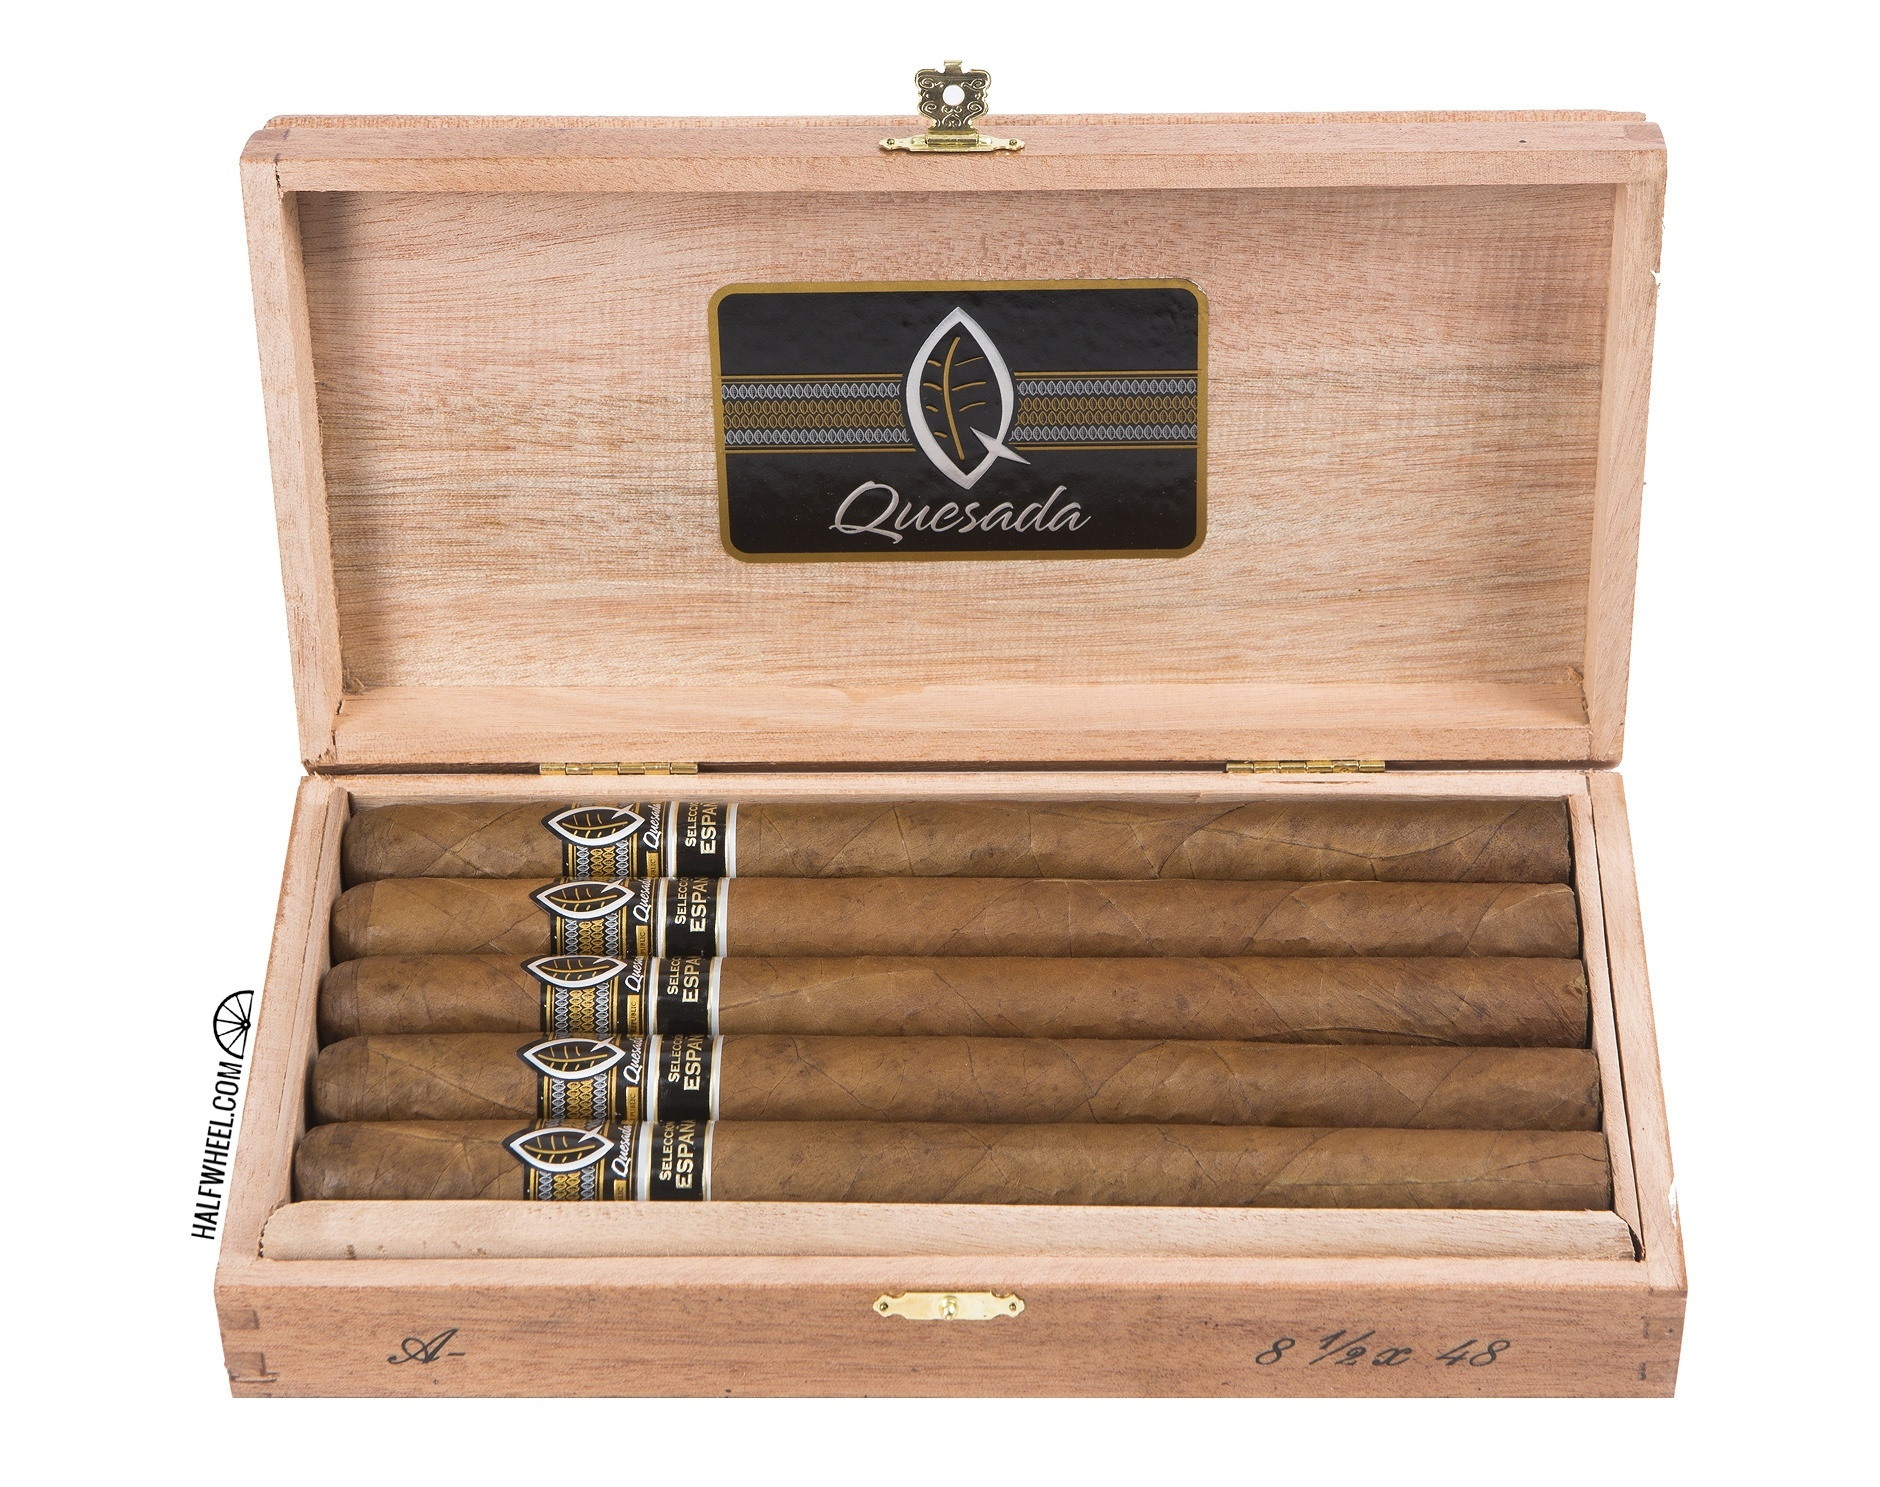 Quesada Espana A- Box 2